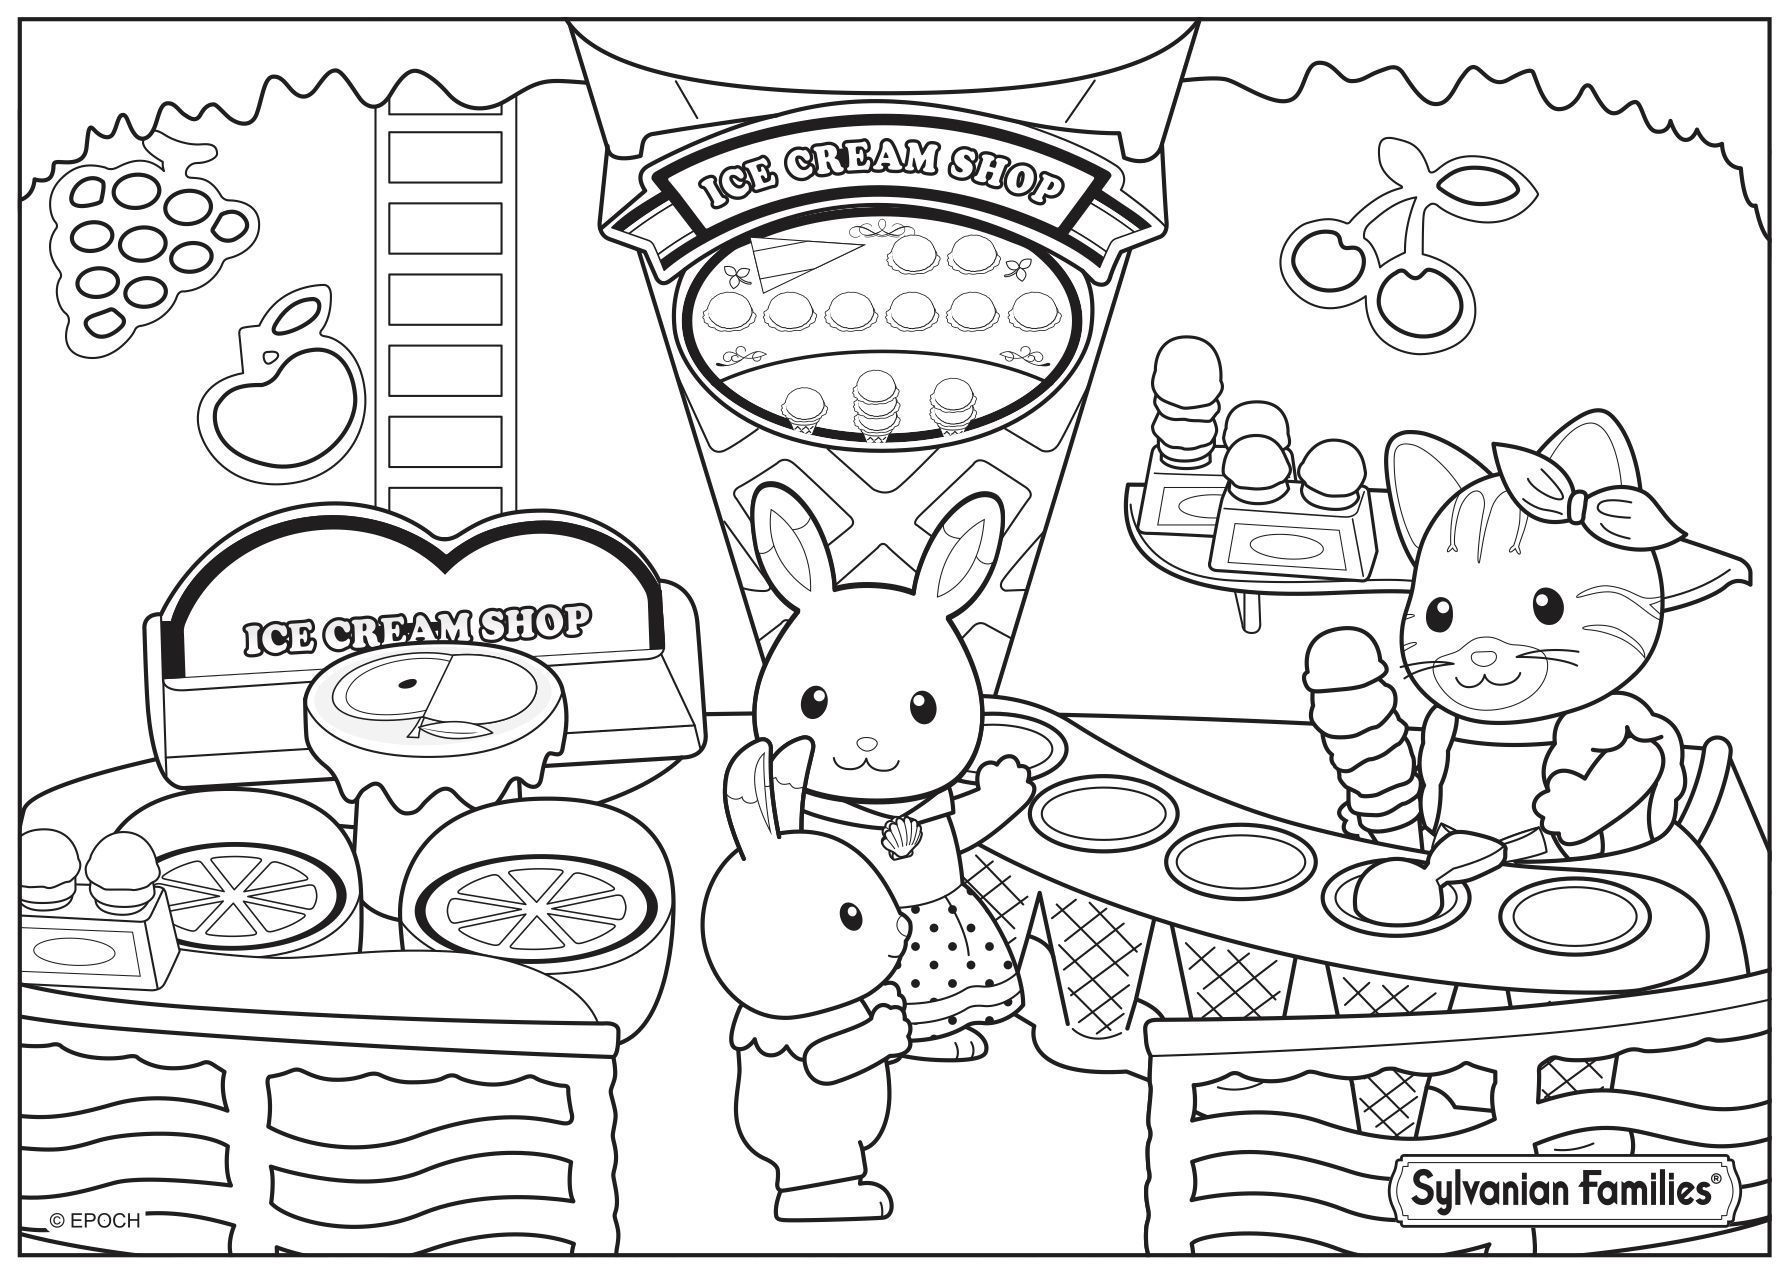 Free Coloring Pages Download 237 Best Sylvanian Families Images On Pinterest Sylvanian Fam Hello Kitty Para Colorear Dibujos Para Colorear Dibujos Para Ninos